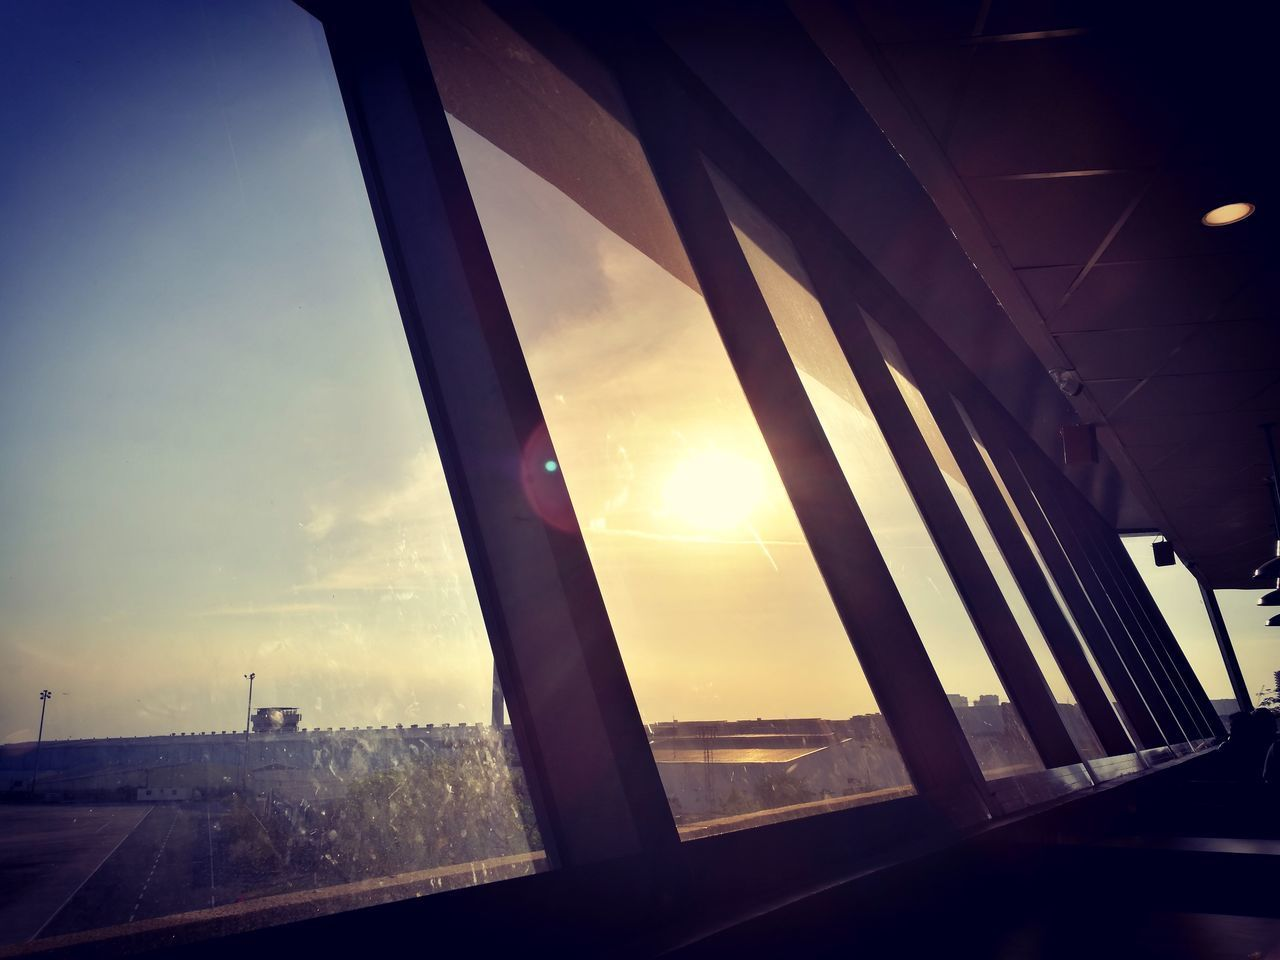 EyeEmNewHere Sunset Silhouettes Relaxing Moments Sunlight Memories Airport Waiting Departure Goodbye